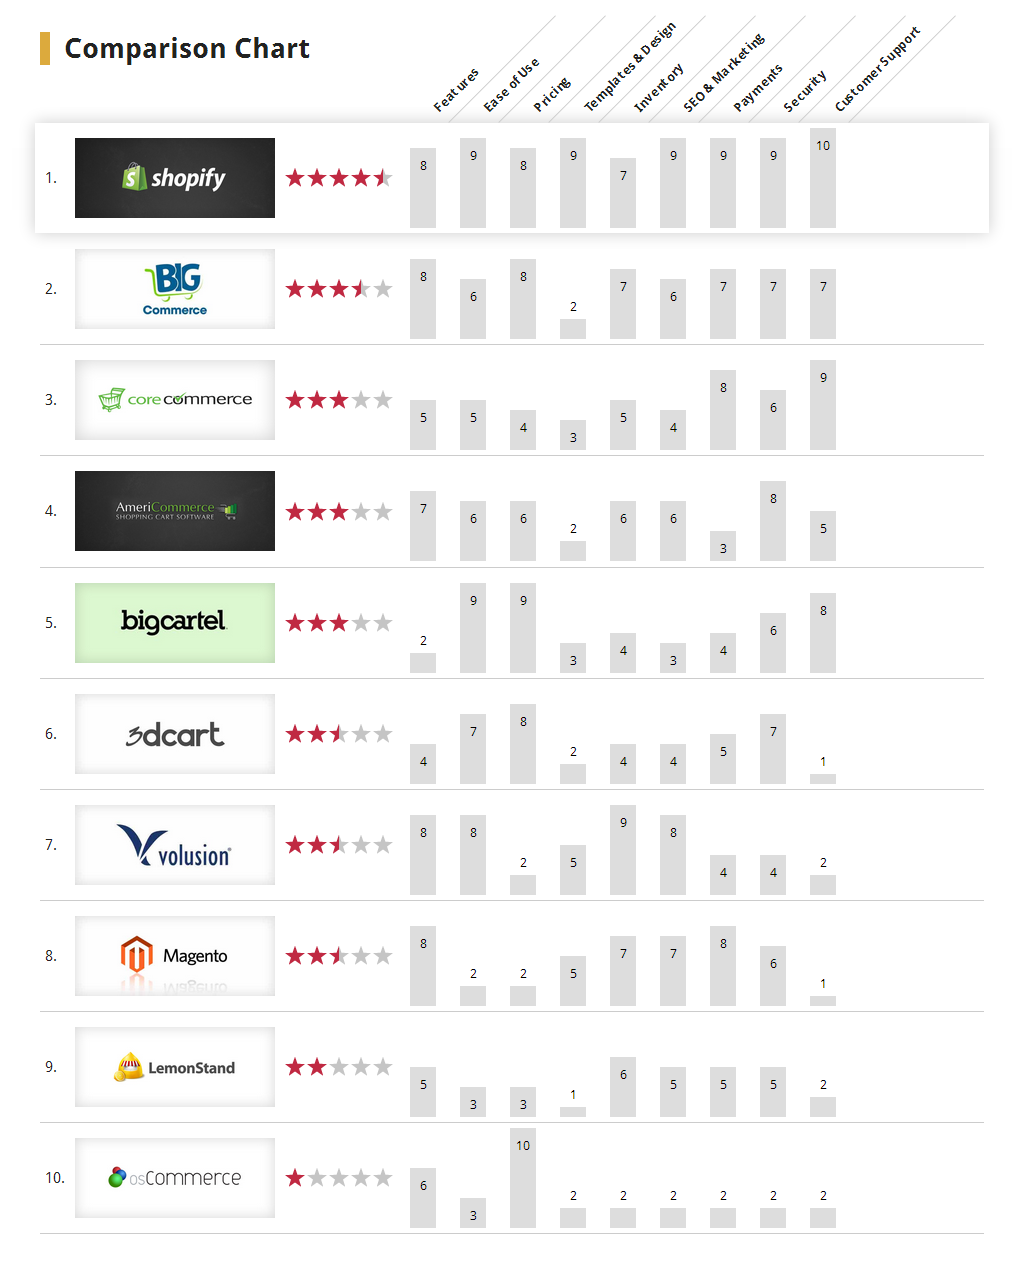 Top 10 Ecommerce Platforms Reviewed Ecommerce Comparison Chart 2018